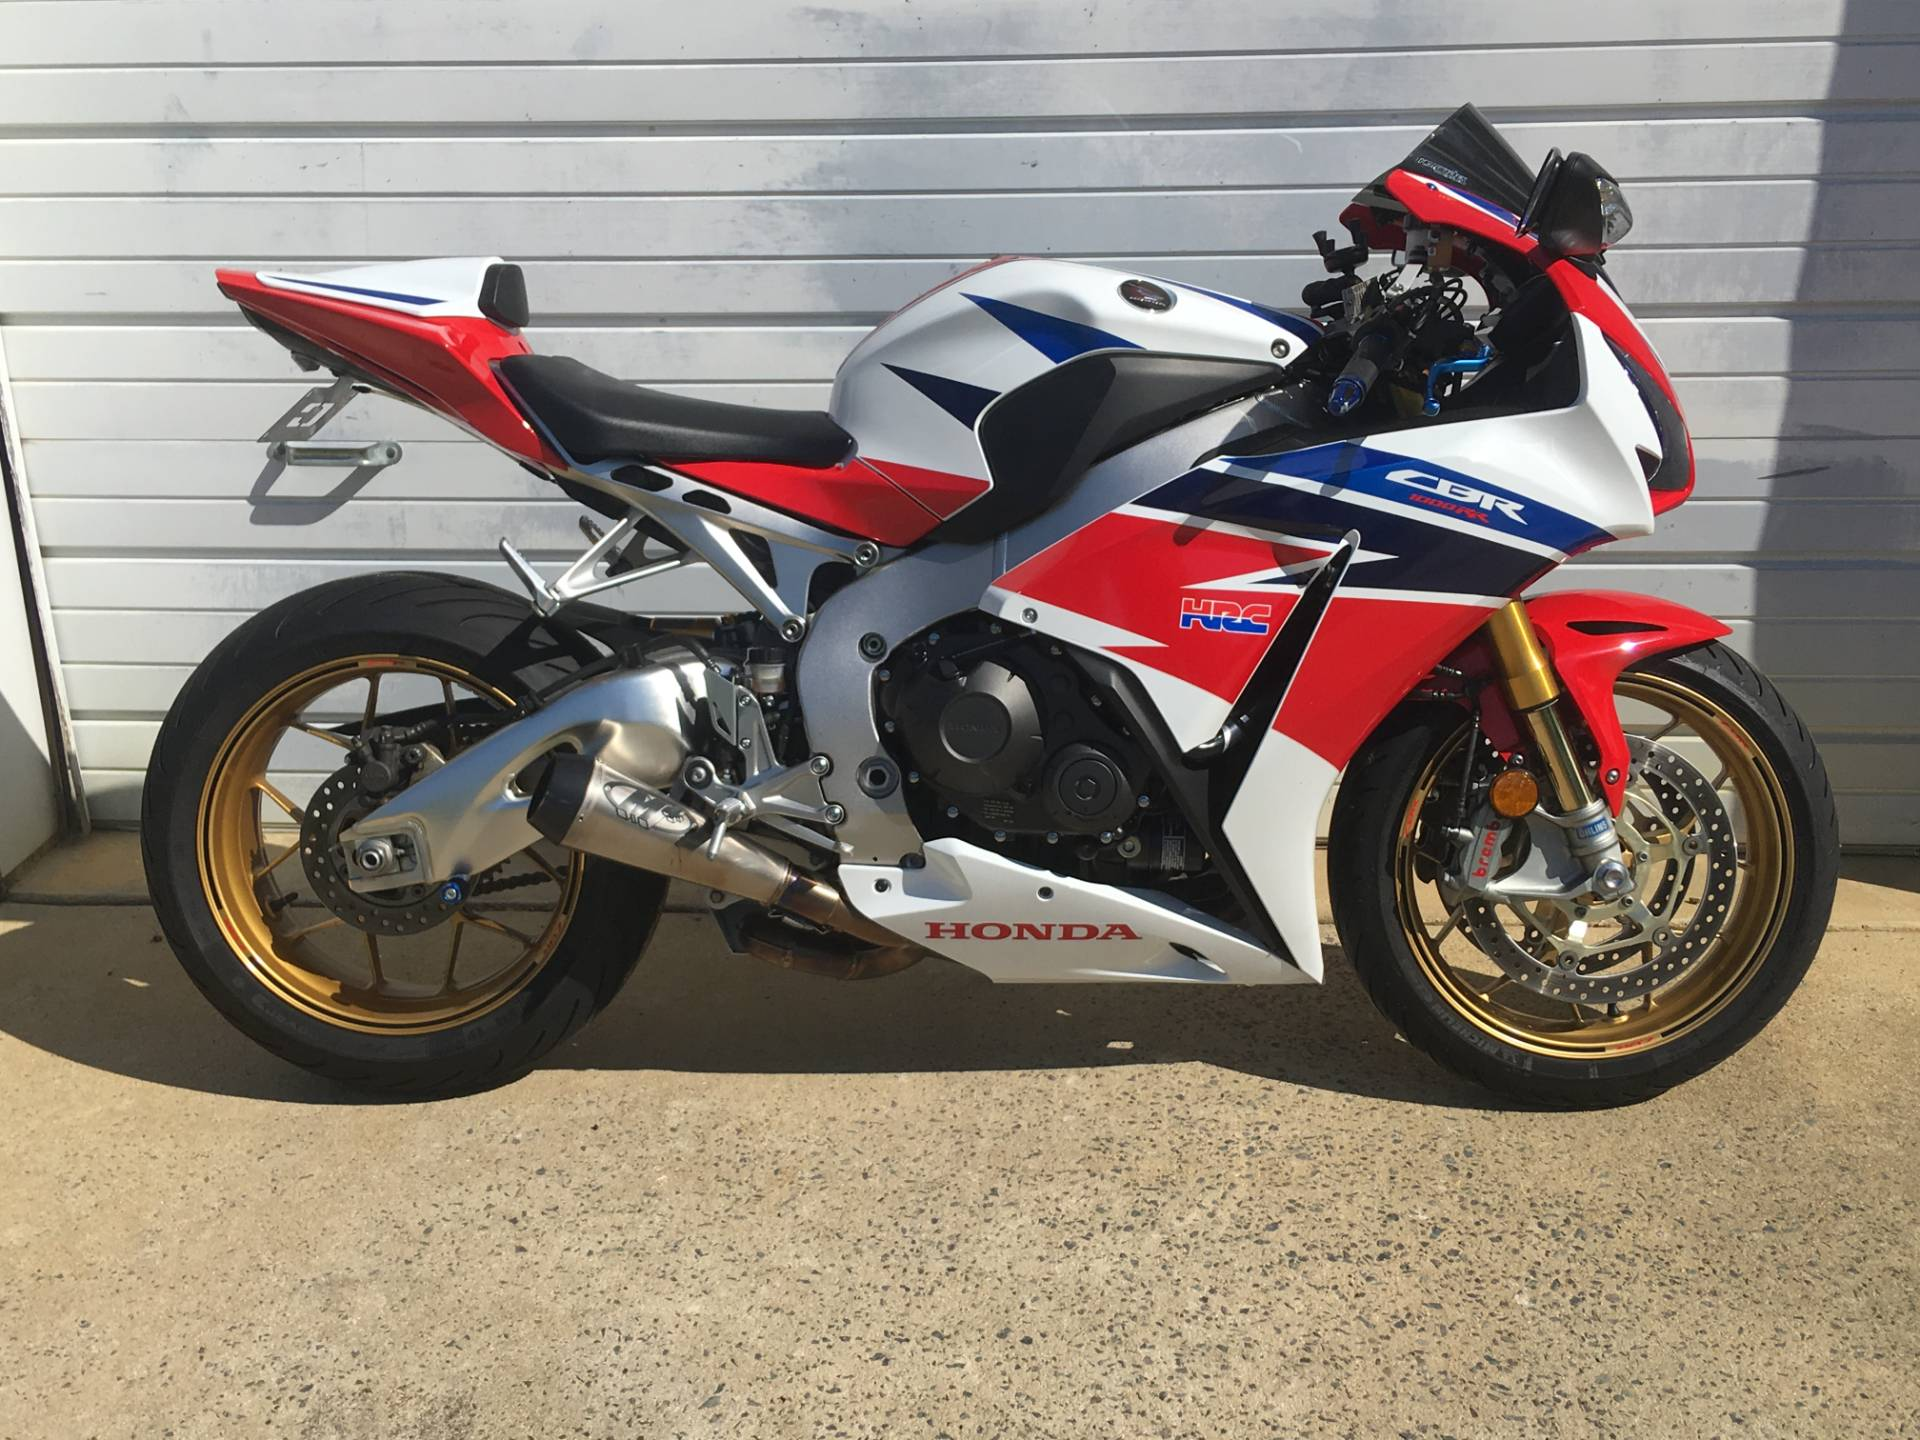 Used 2014 Honda Cbr1000rr Sp Motorcycles In Sanford Nc Stock